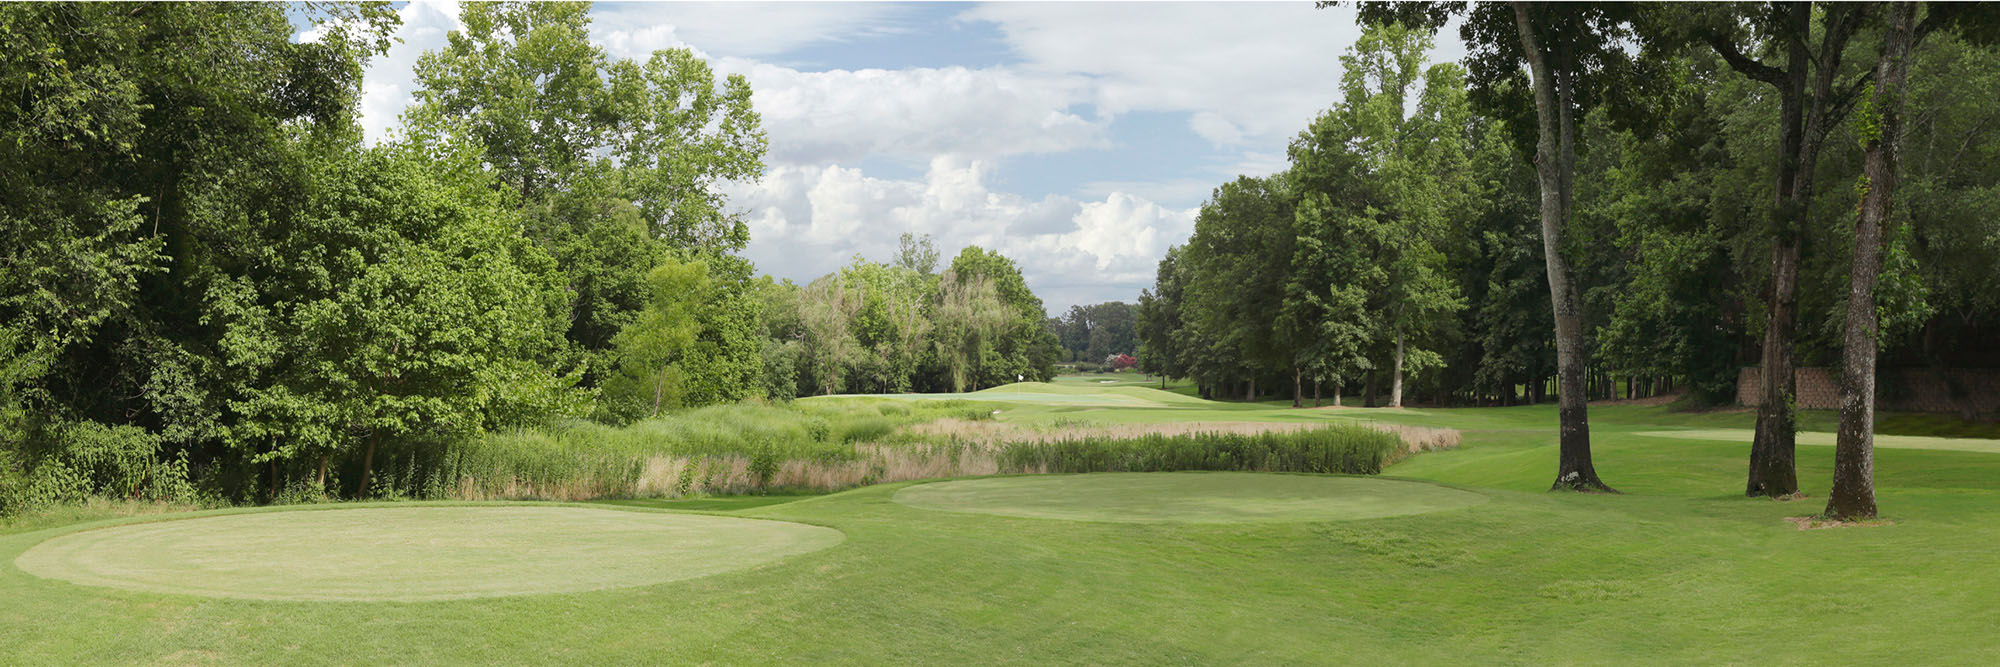 Golf Course Image - River Run Country Club No. 8